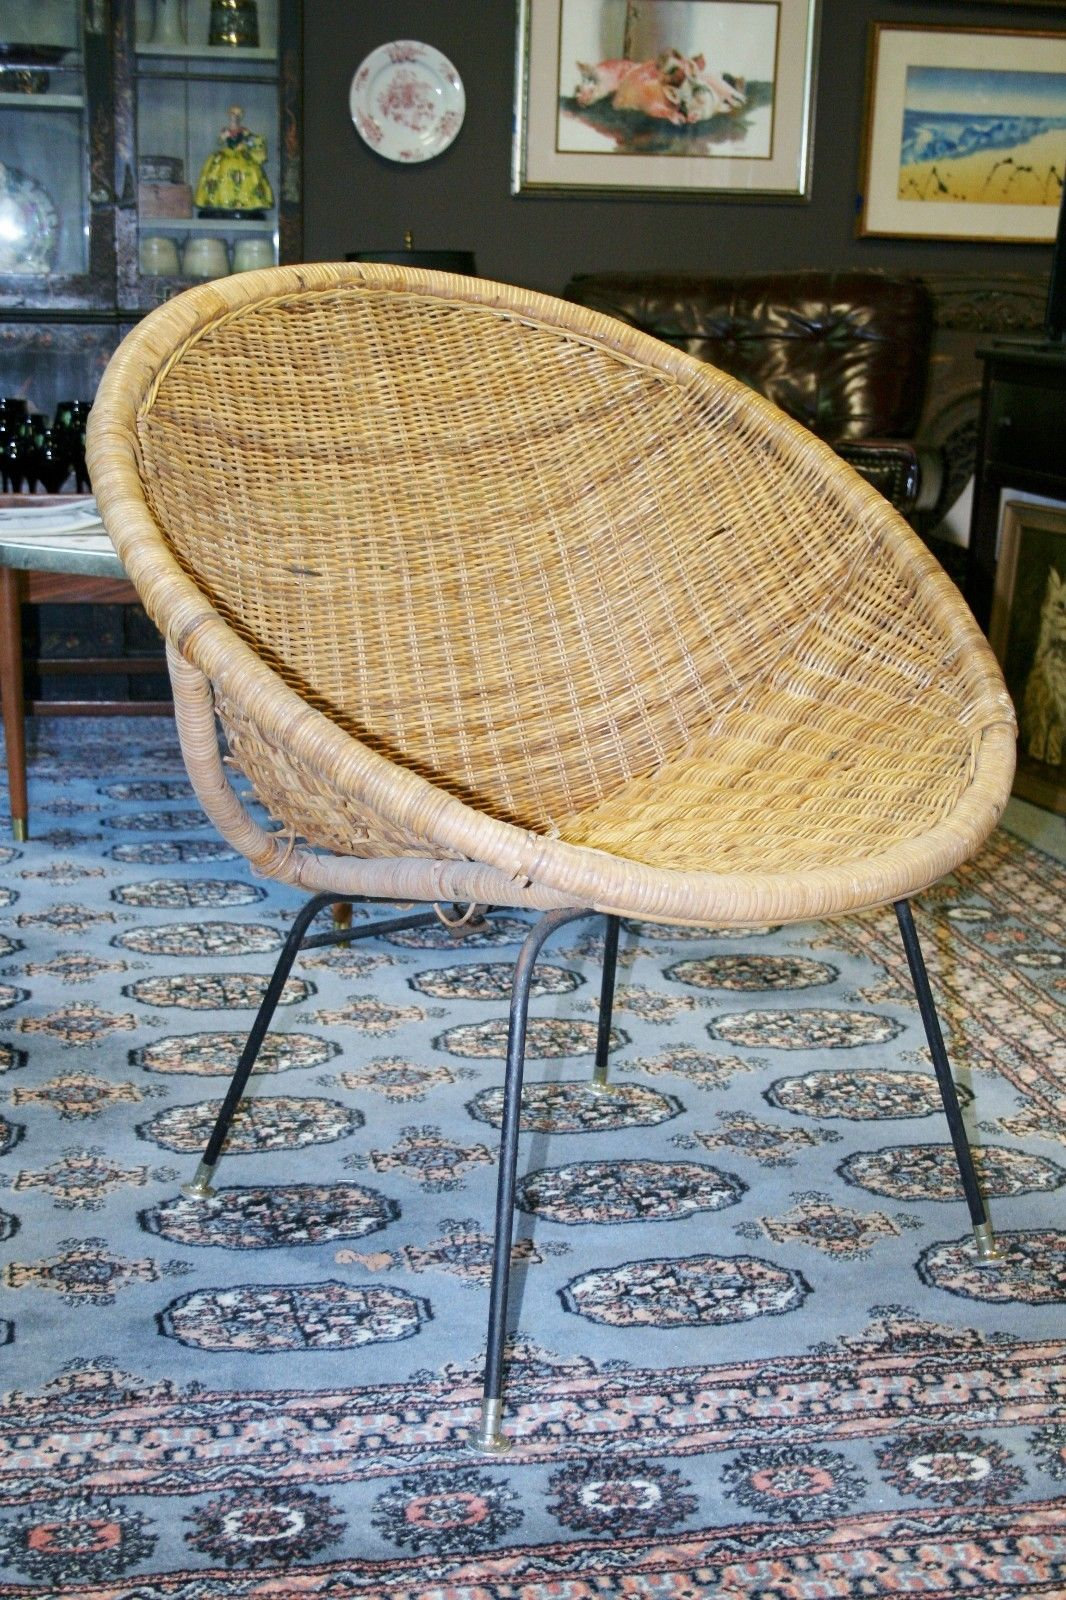 Sensational Mid Century Modern Rattan Patio Scoop Basket Chair Uwap Interior Chair Design Uwaporg